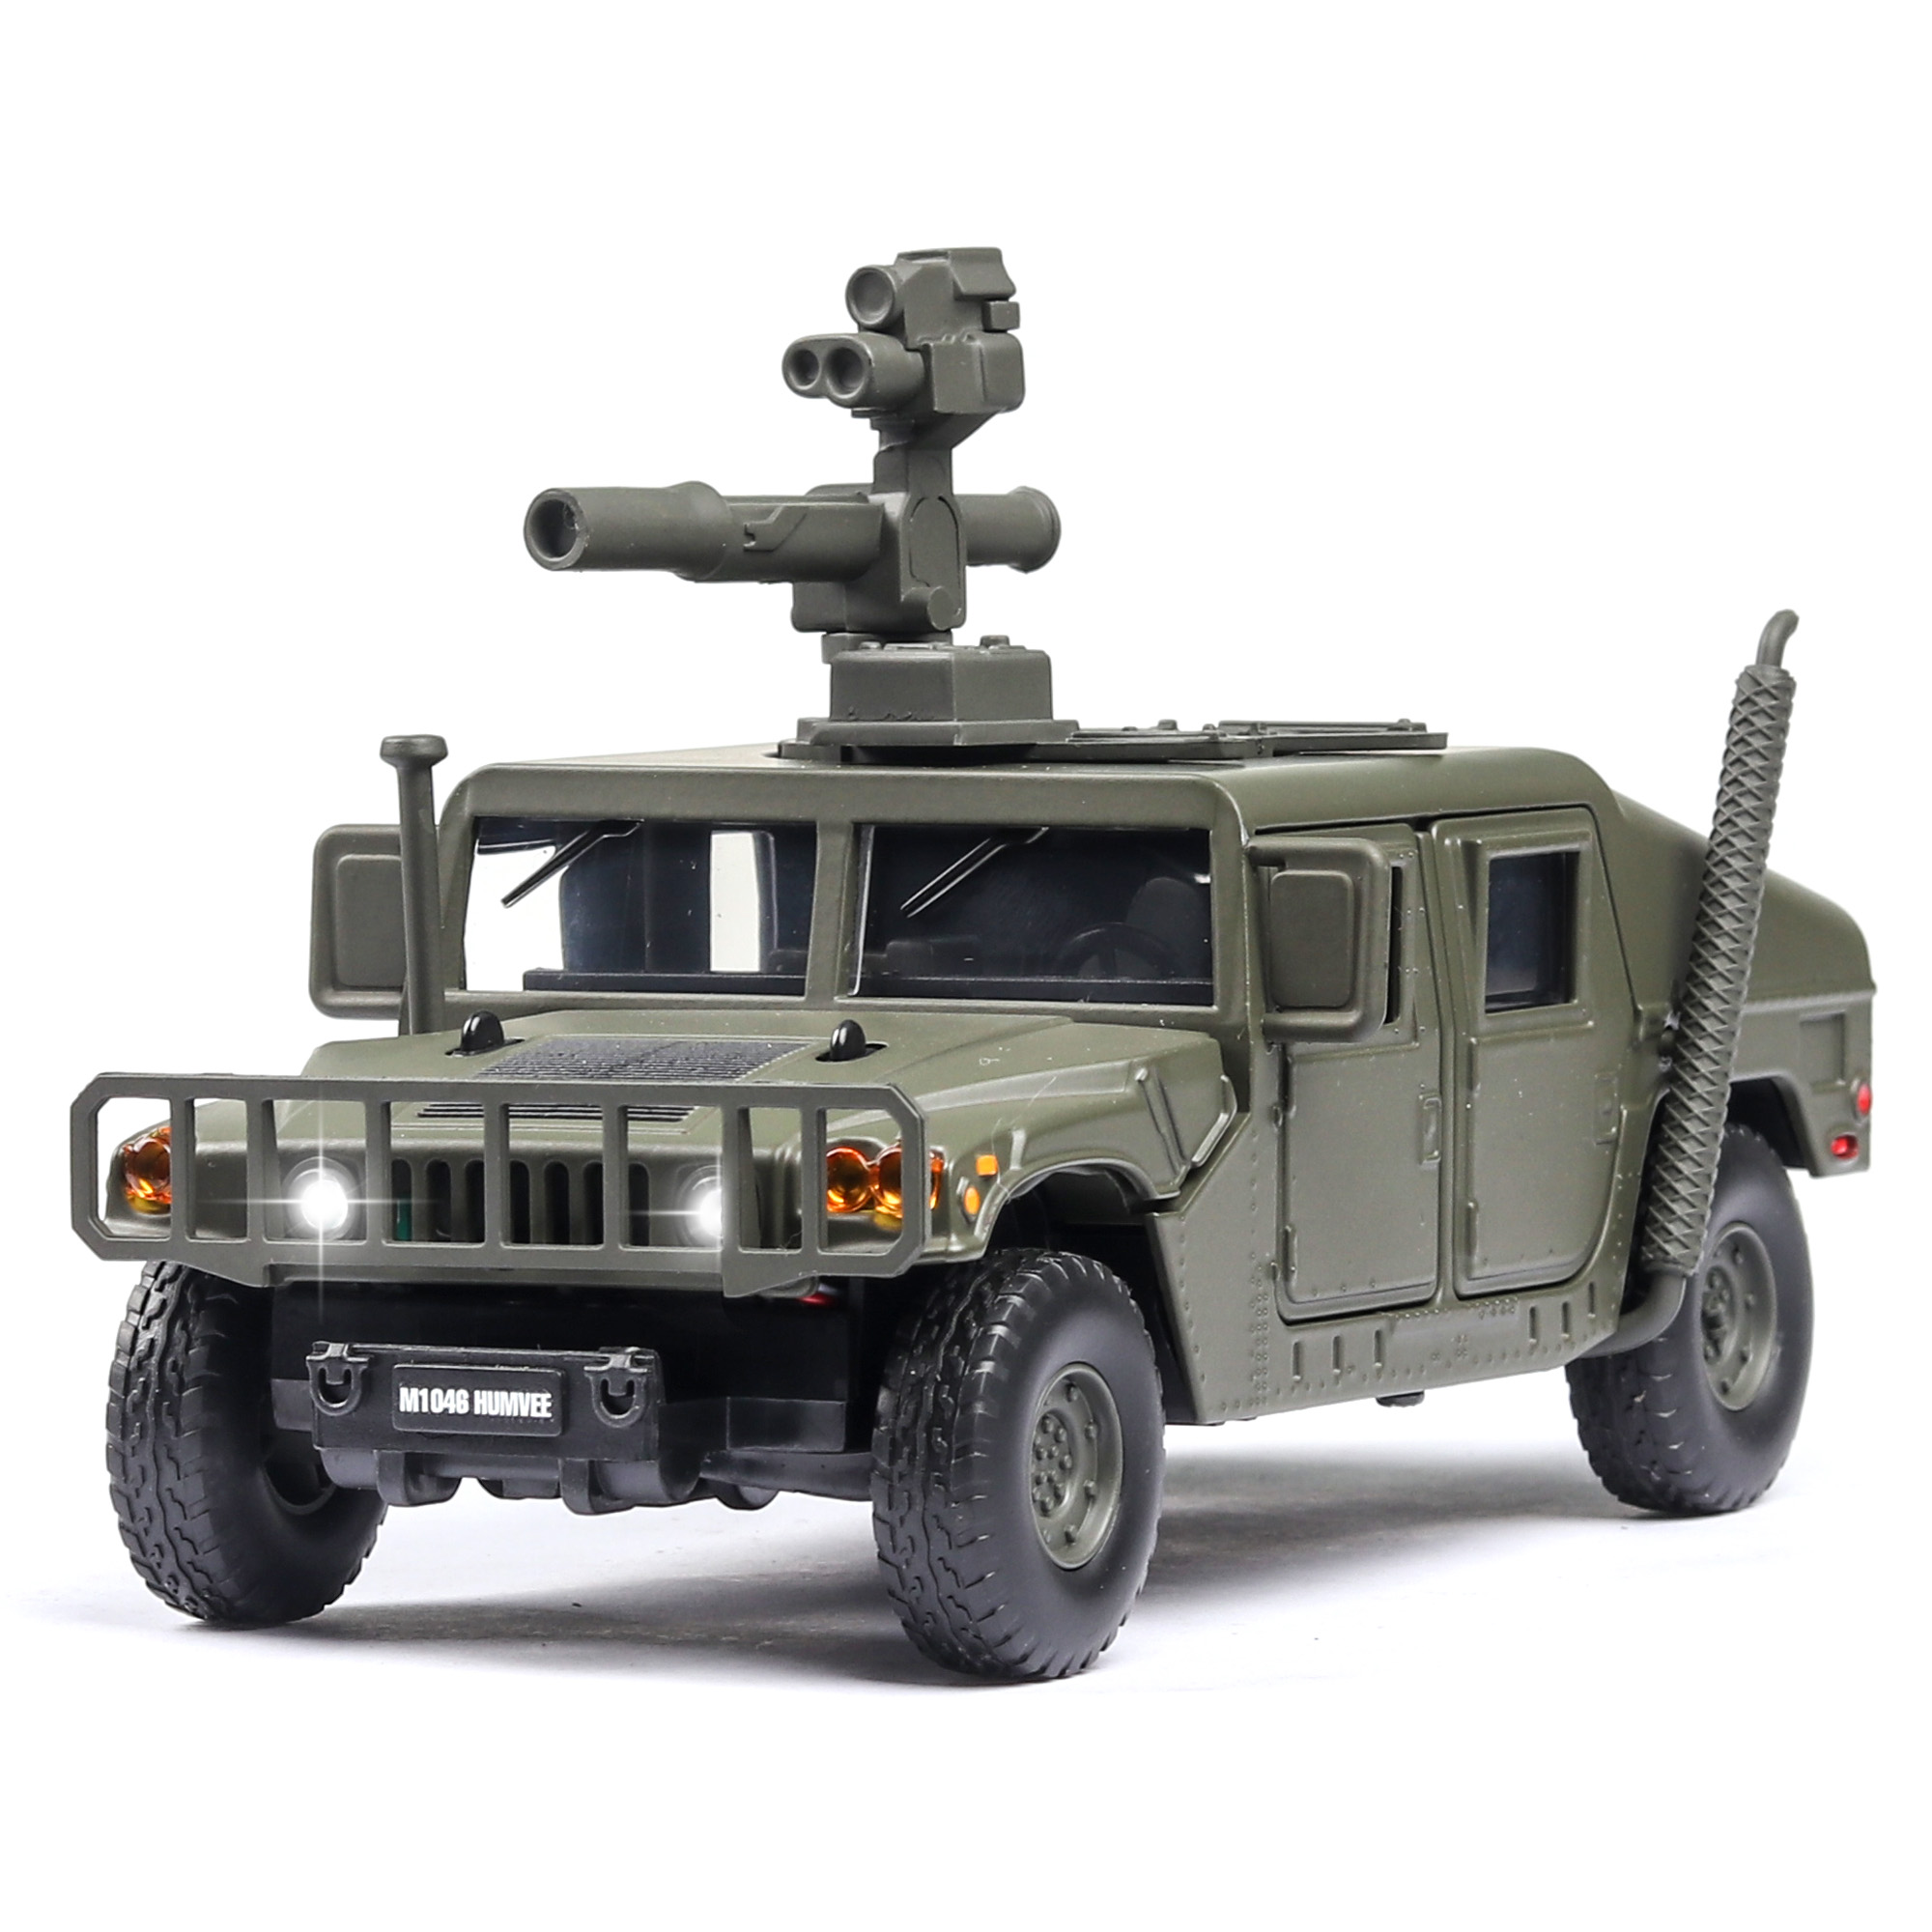 1:32 U.S Hummer M1046 Military Car Model Russia Tiger-M Explosion Proof Armored Sound Light Alloy Car Diecast Toy Vehicles Kids